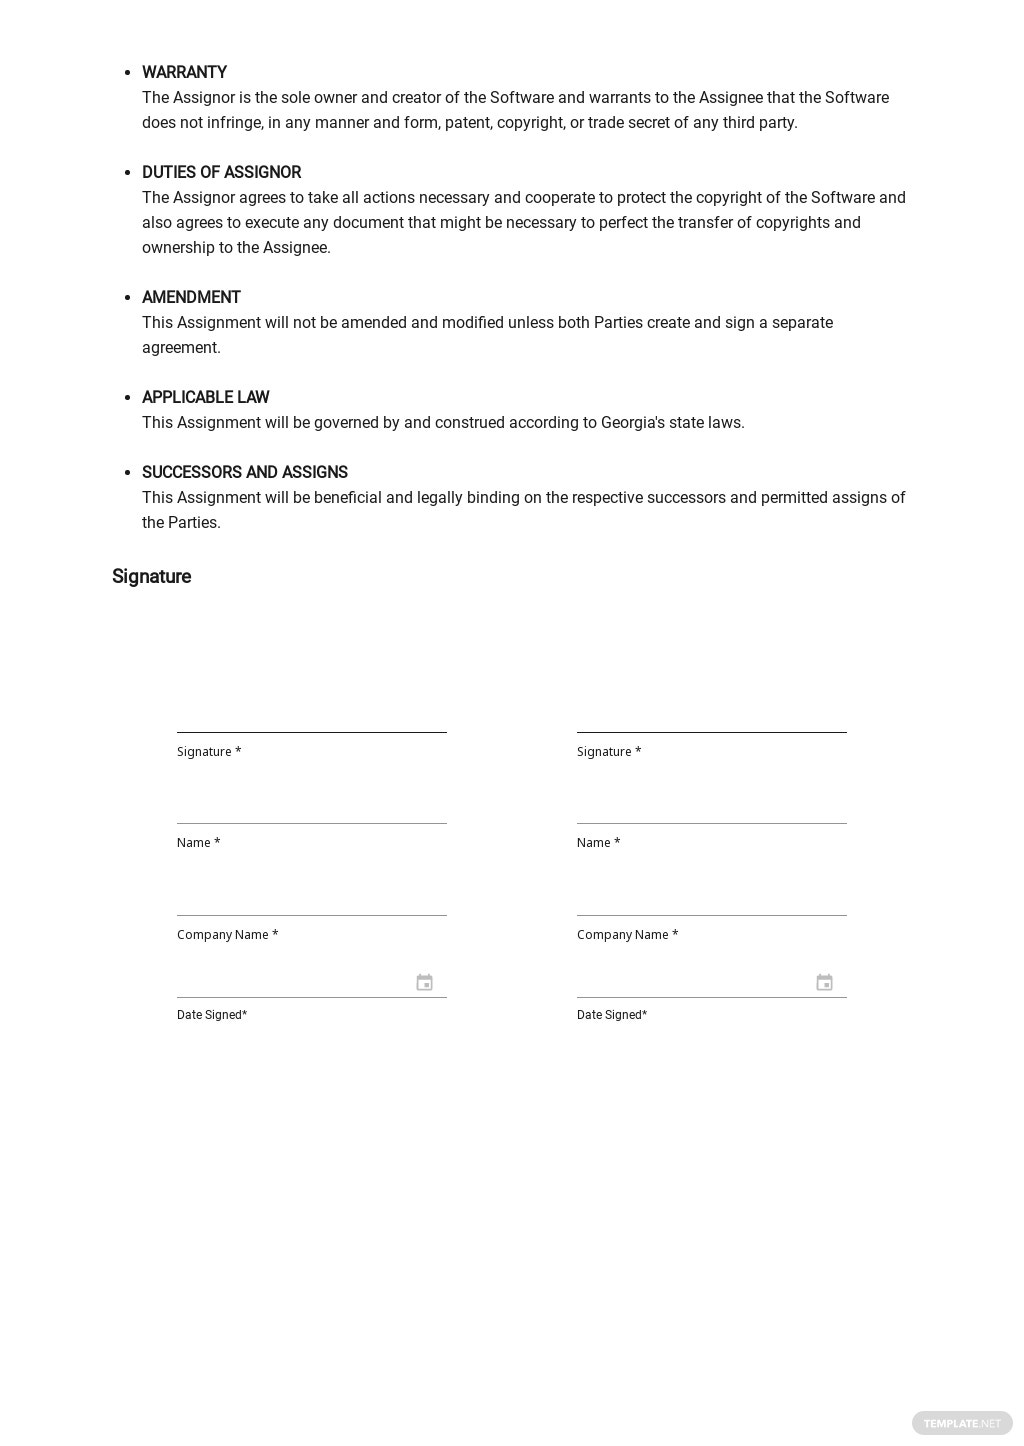 Copyright Assignment For Software Template 2.jpe